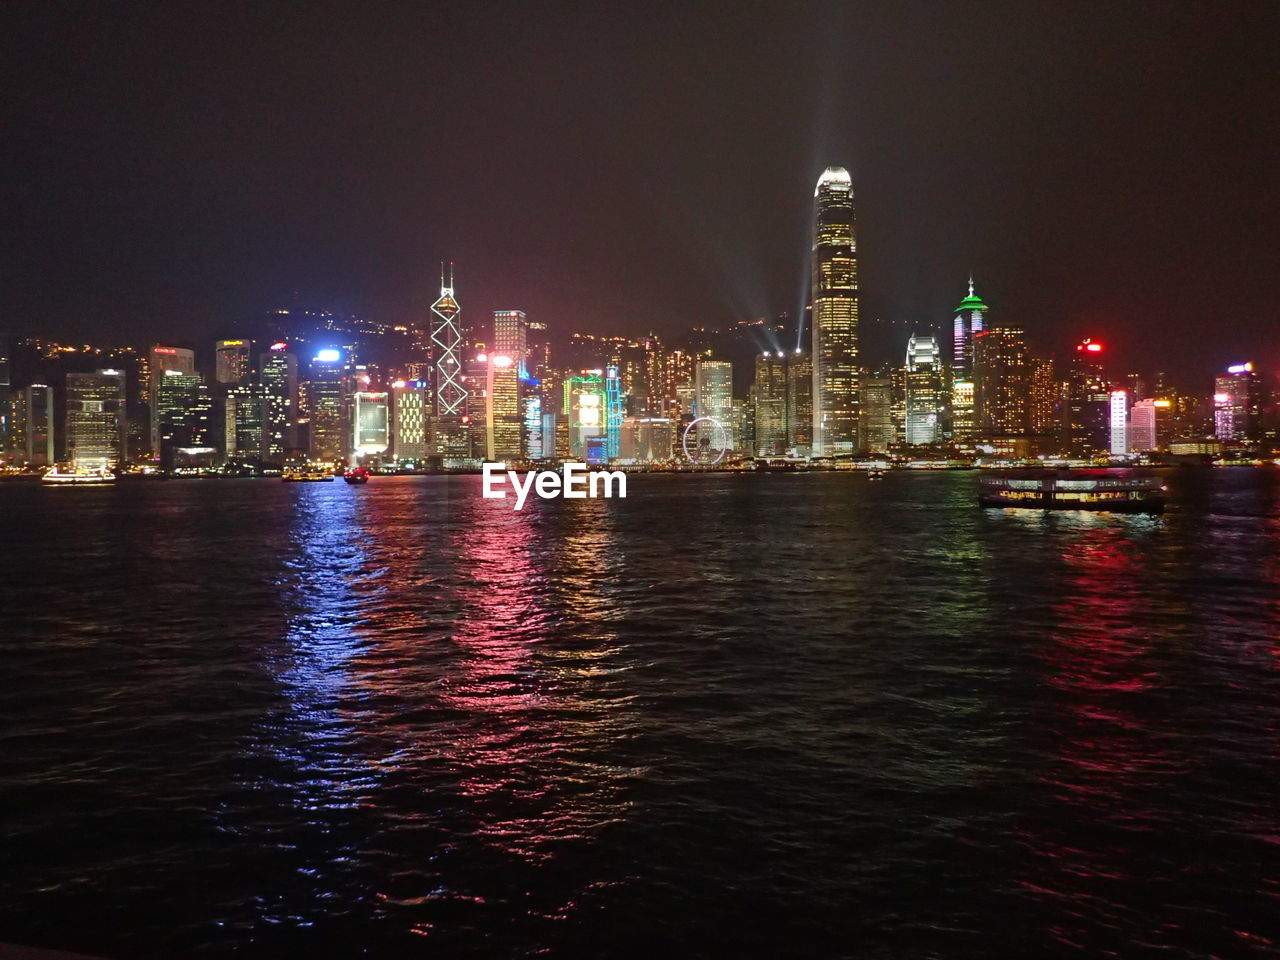 building exterior, architecture, skyscraper, illuminated, tall - high, night, built structure, city, urban skyline, cityscape, tower, travel destinations, modern, financial district, water, outdoors, waterfront, river, downtown district, no people, sky